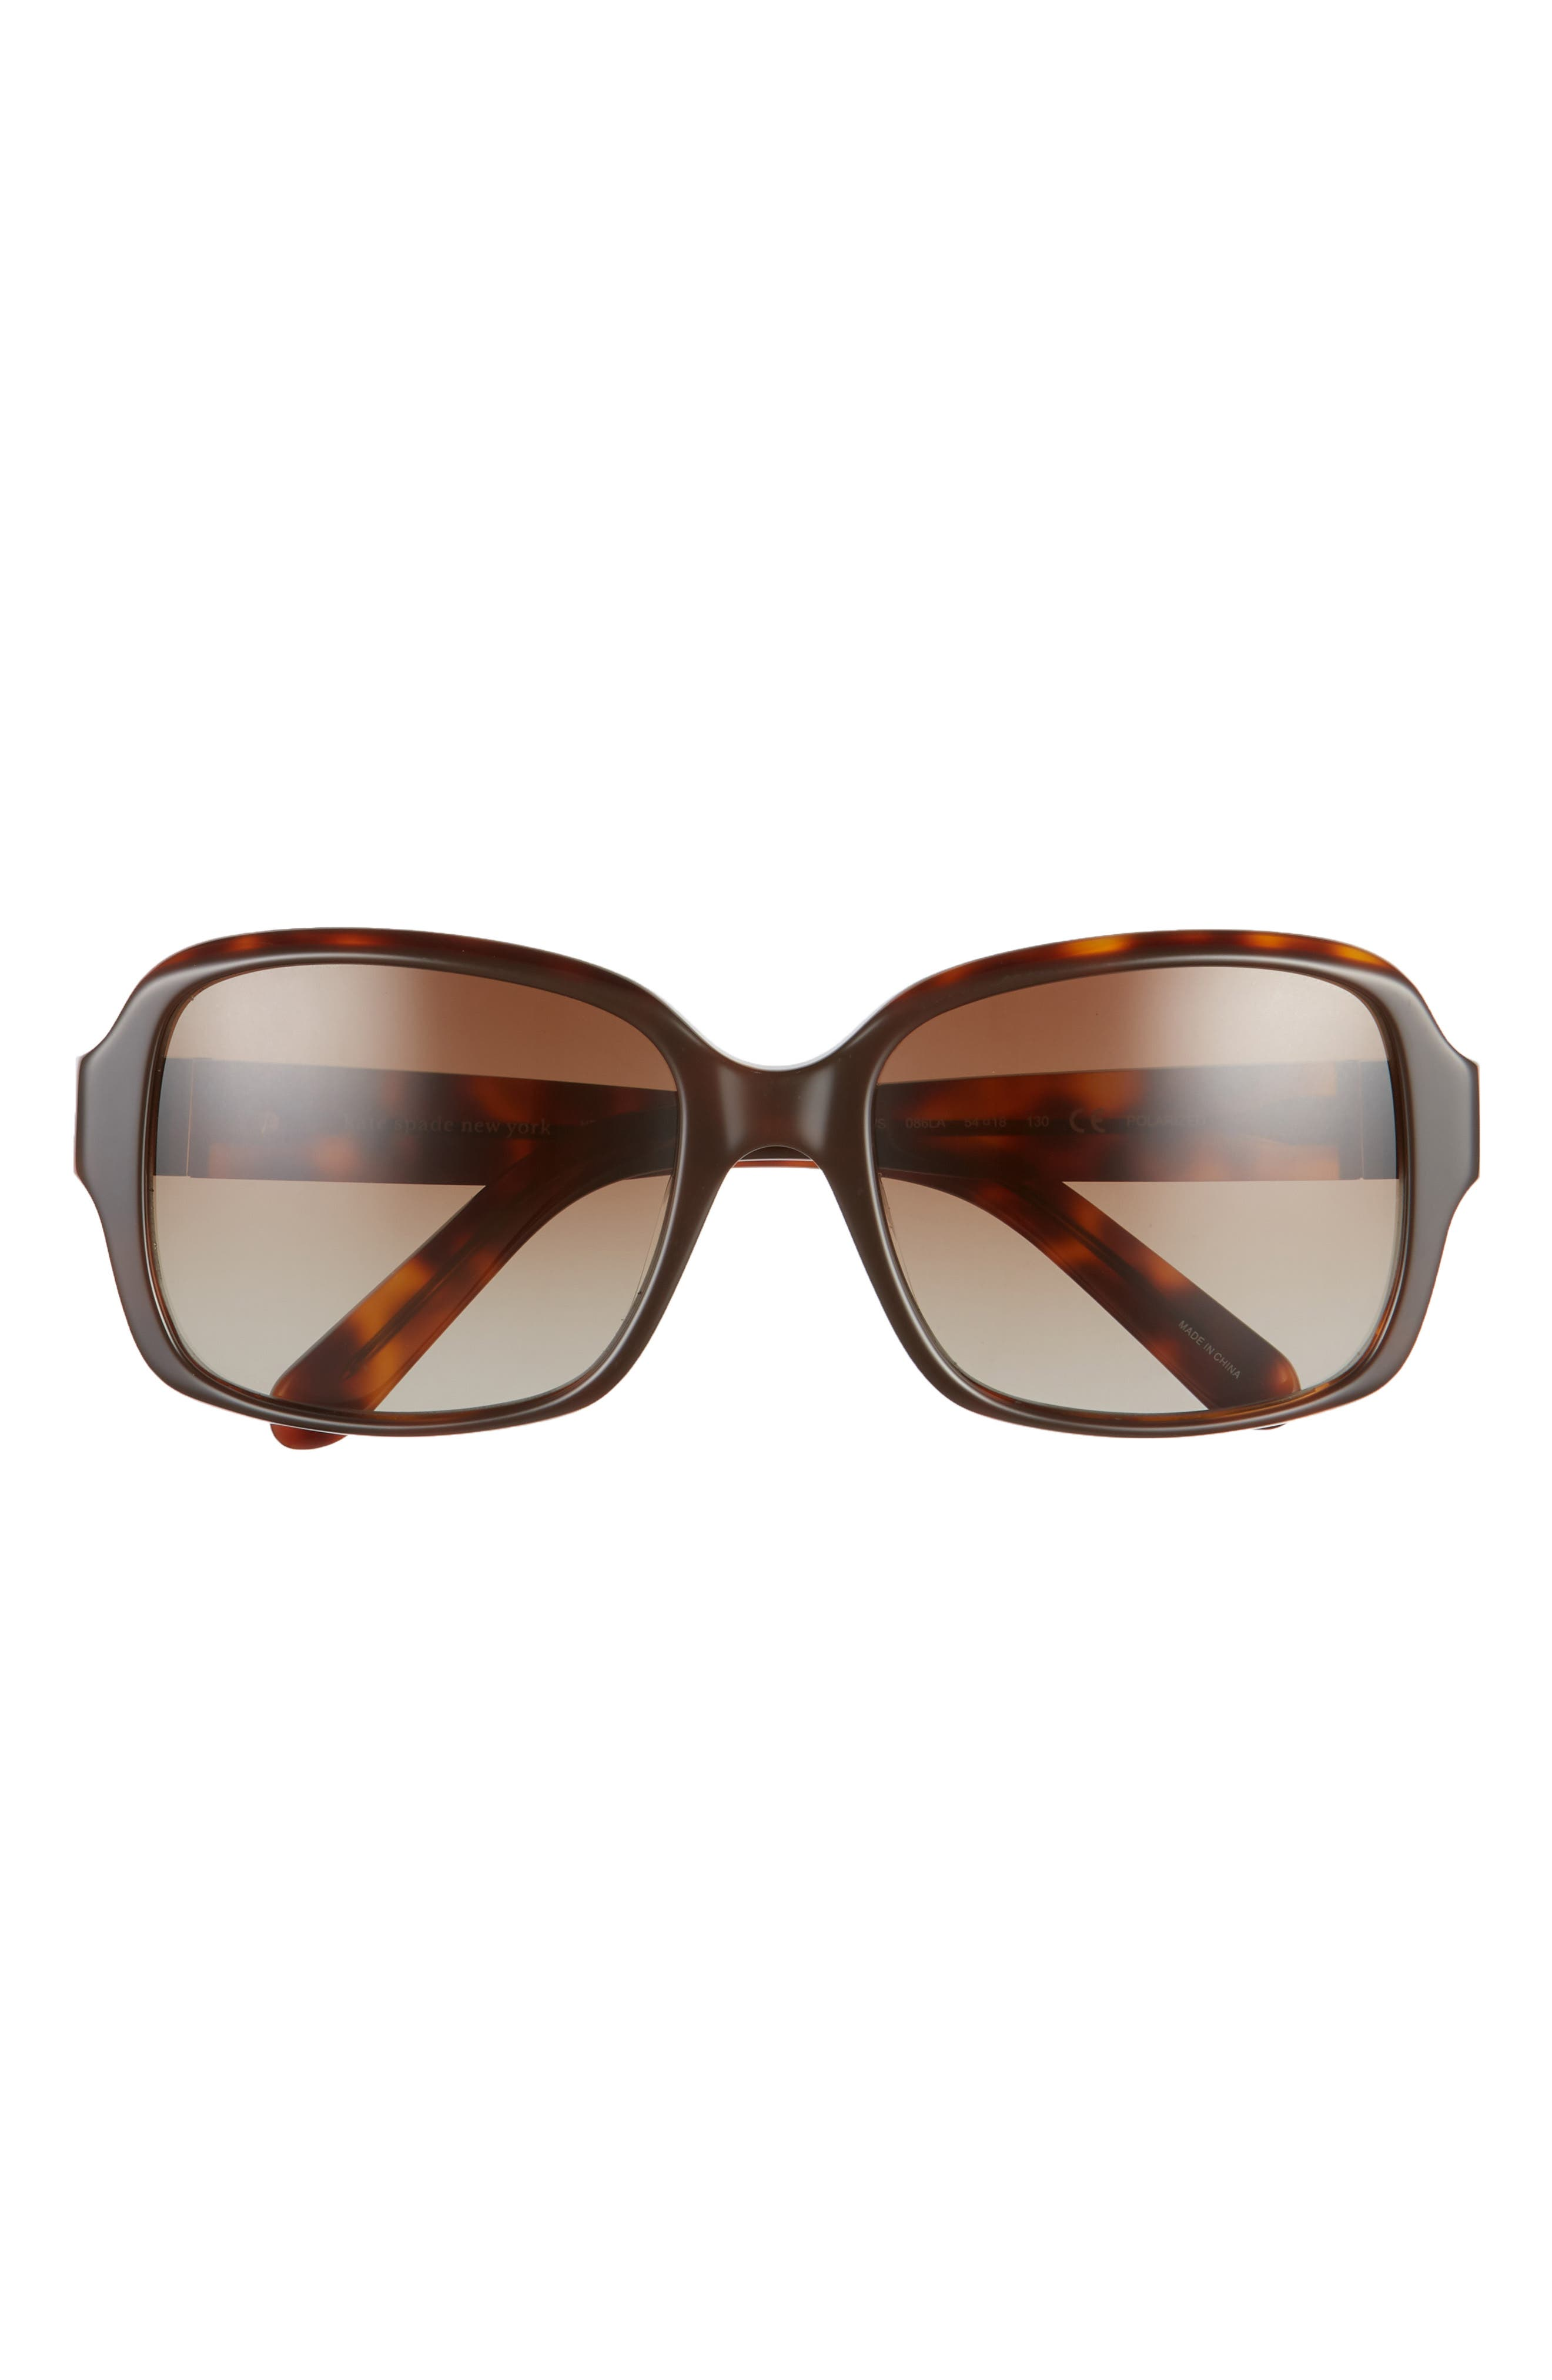 Image of kate spade new york annor 54mm polarized sunglasses